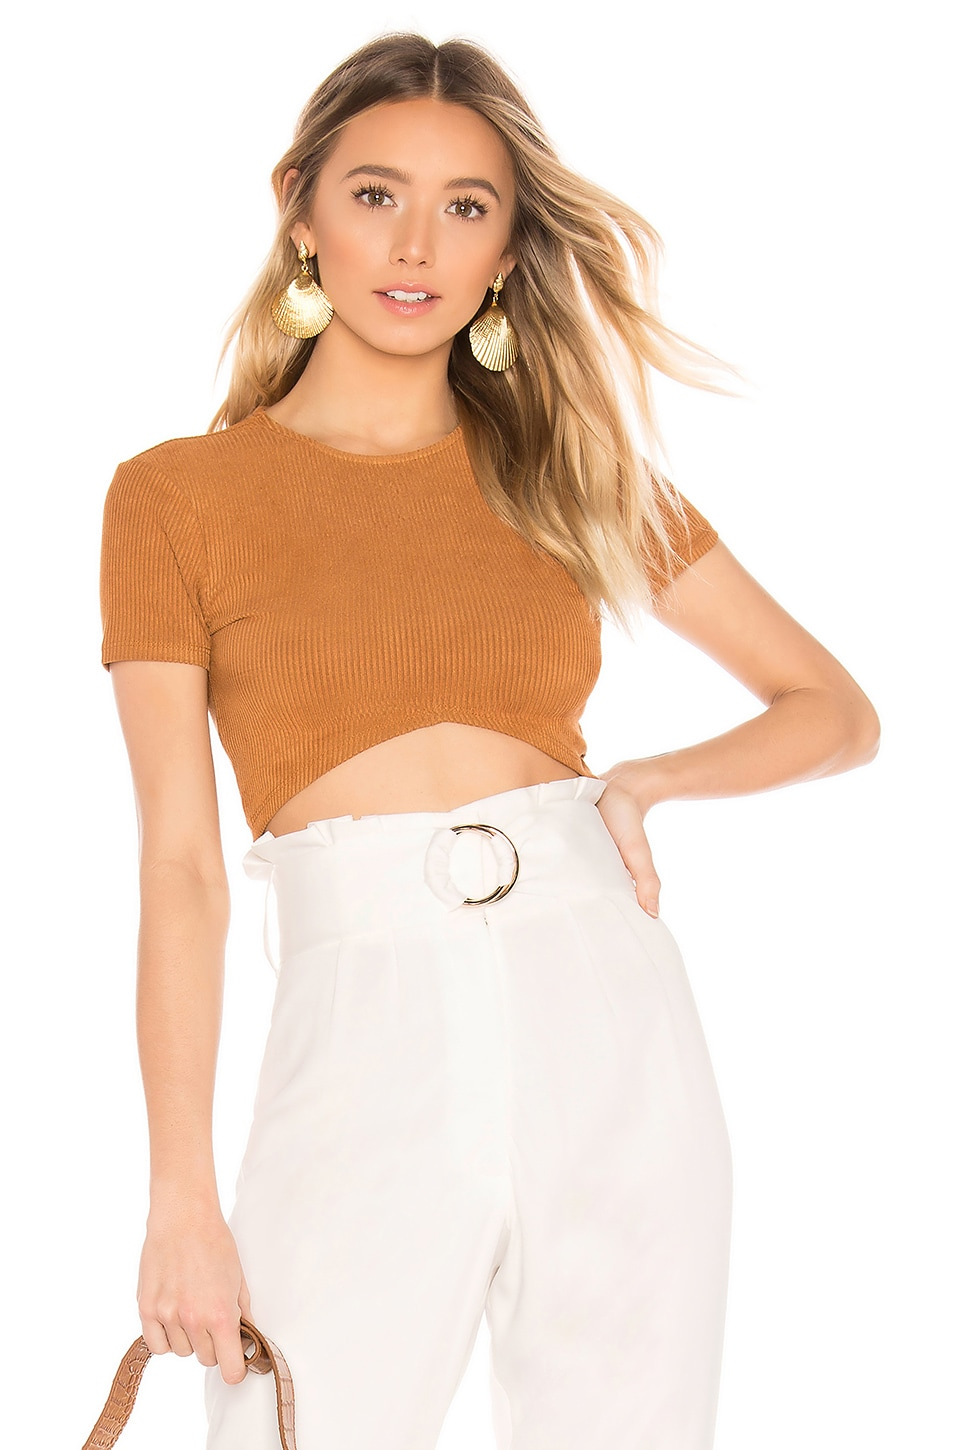 House of Harlow 1960 X REVOLVE Rika Top in Toffee